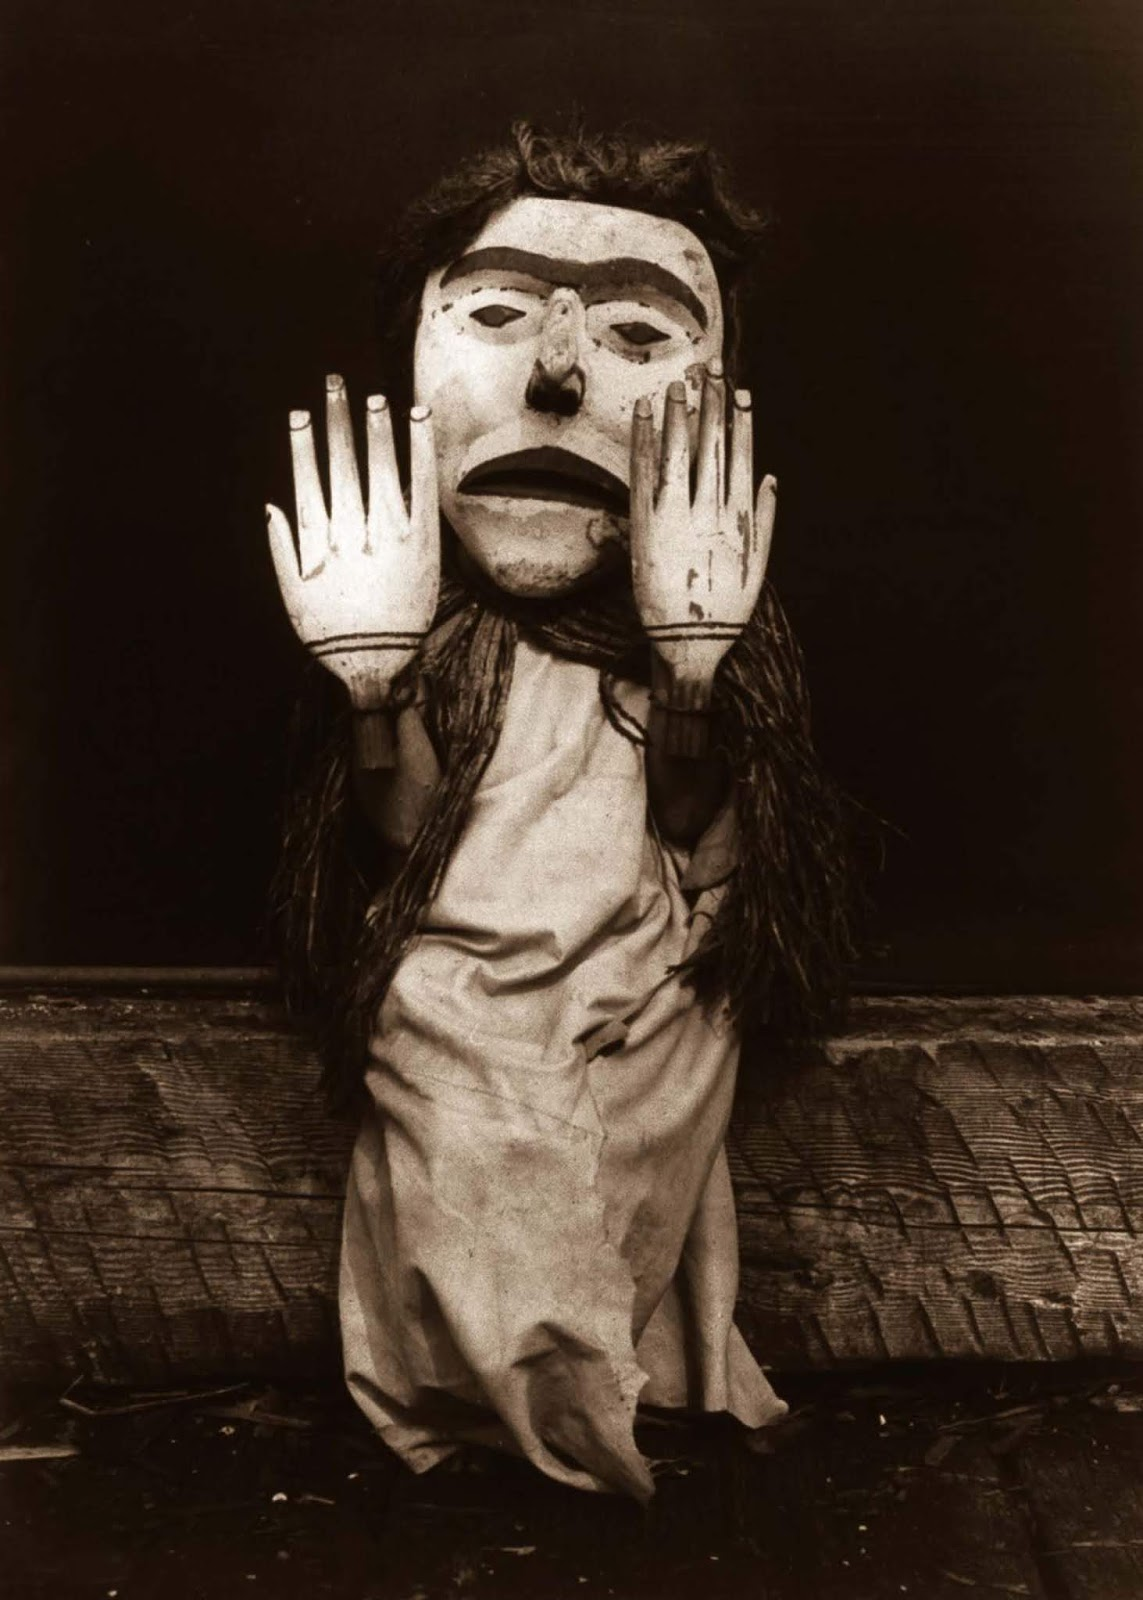 A Kwakiutl person dressed as a forest spirit, Nuhlimkilaka, (